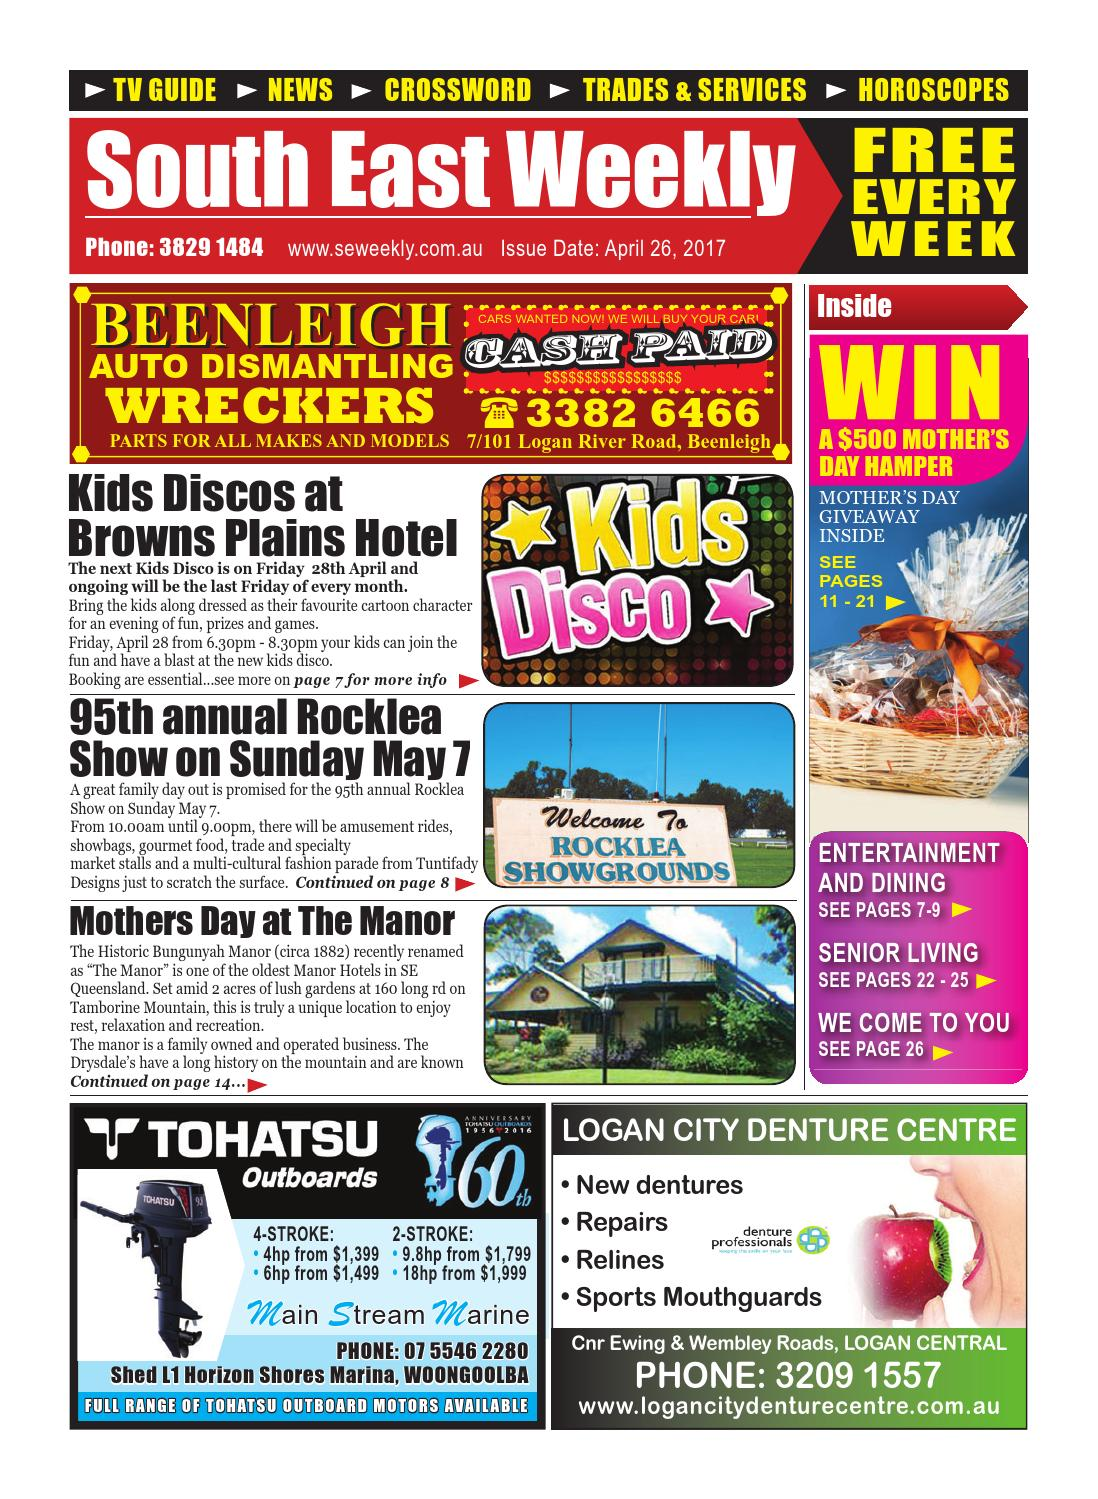 South East Weekly Magazine